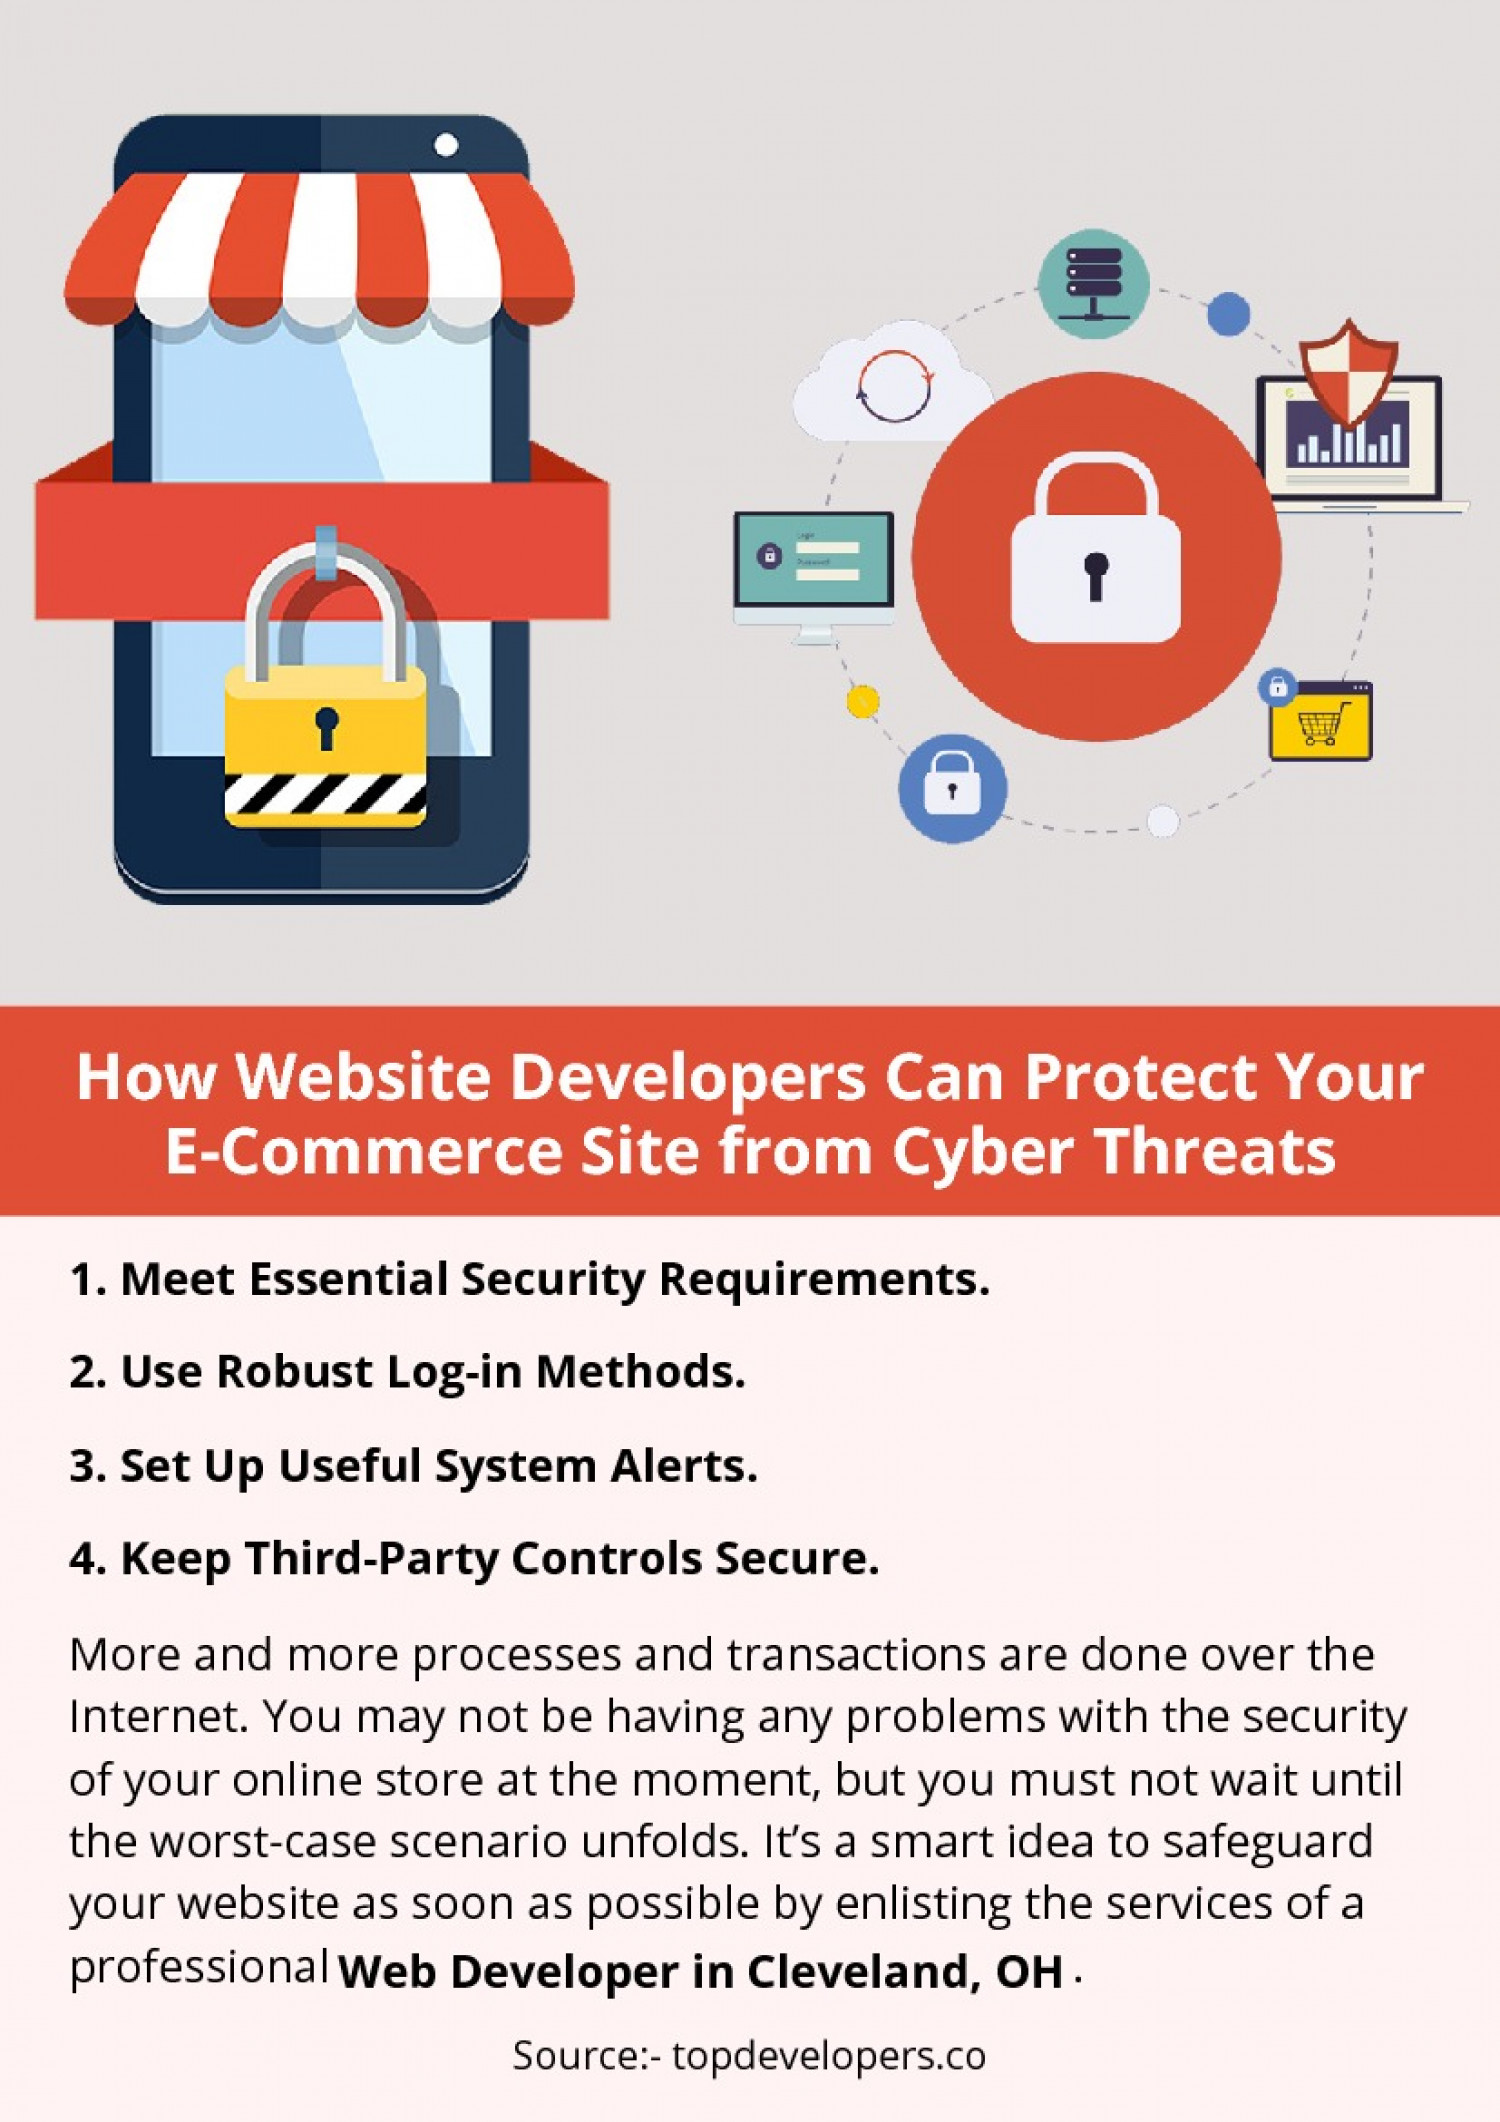 How Website Developers Can Protect Your E-Commerce Site from Cyber Threats Infographic